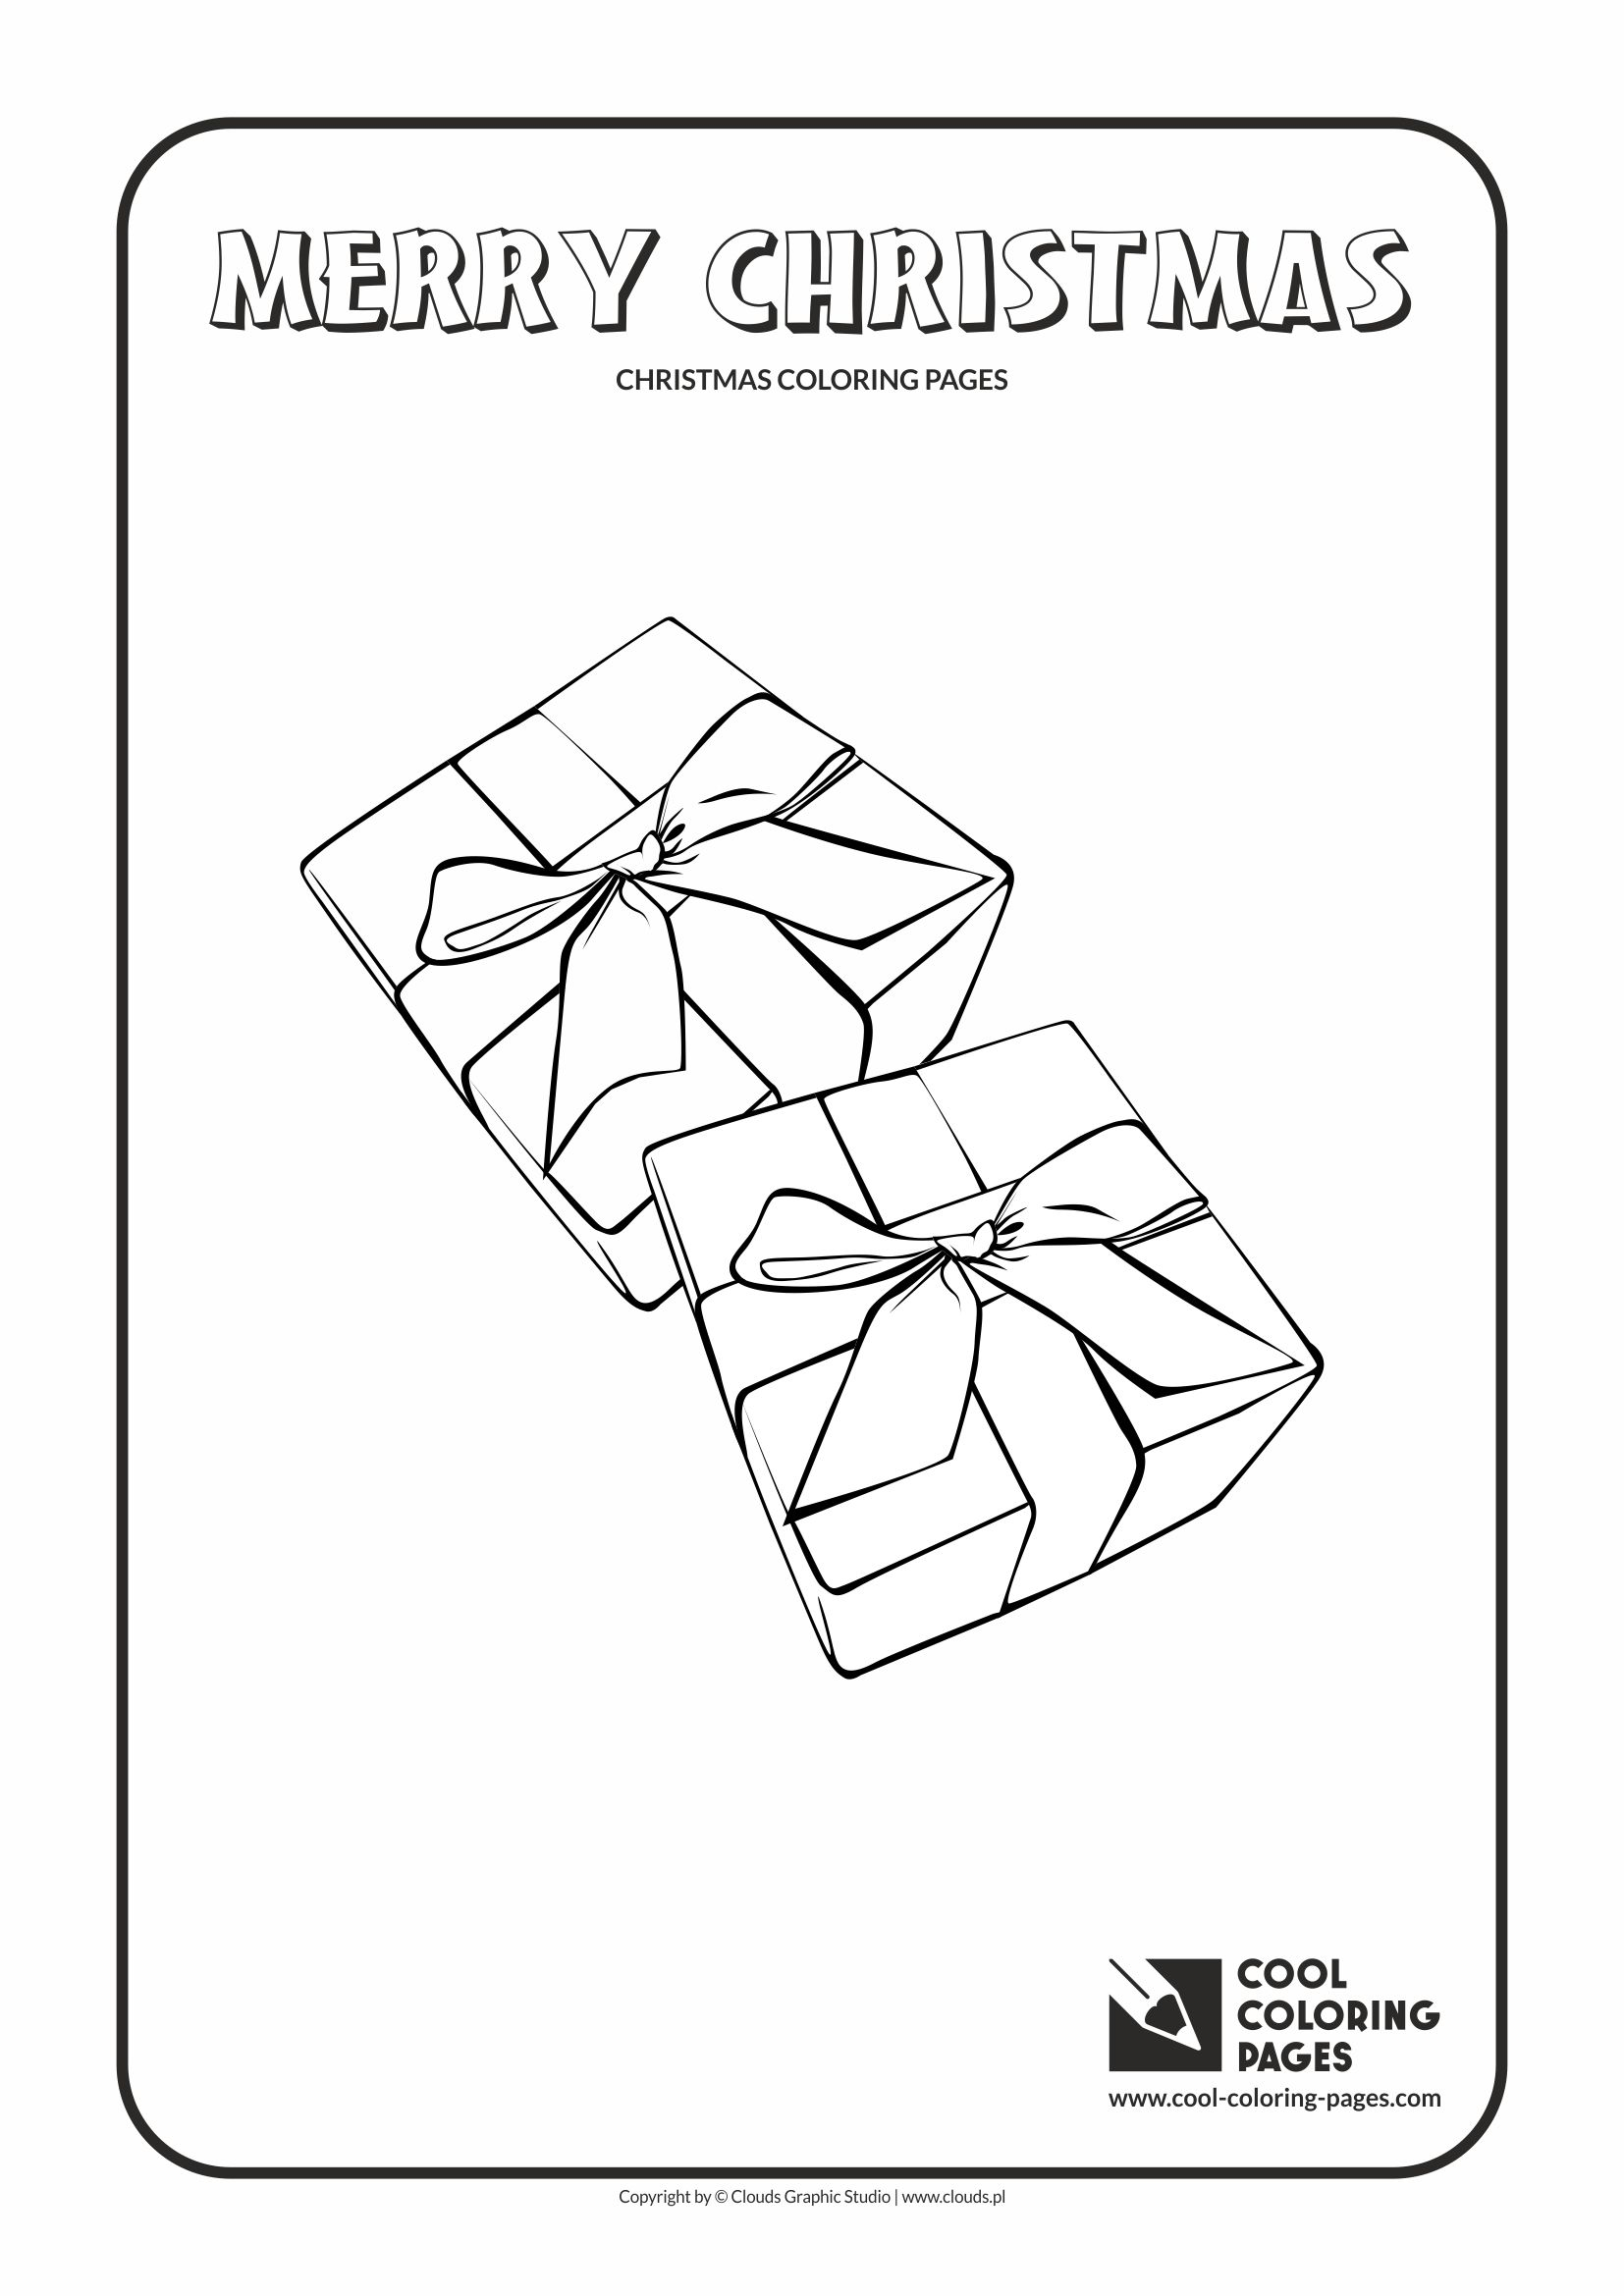 Cool Coloring Pages - Holidays / Christmas gifts / Coloring page with Christmas gifts